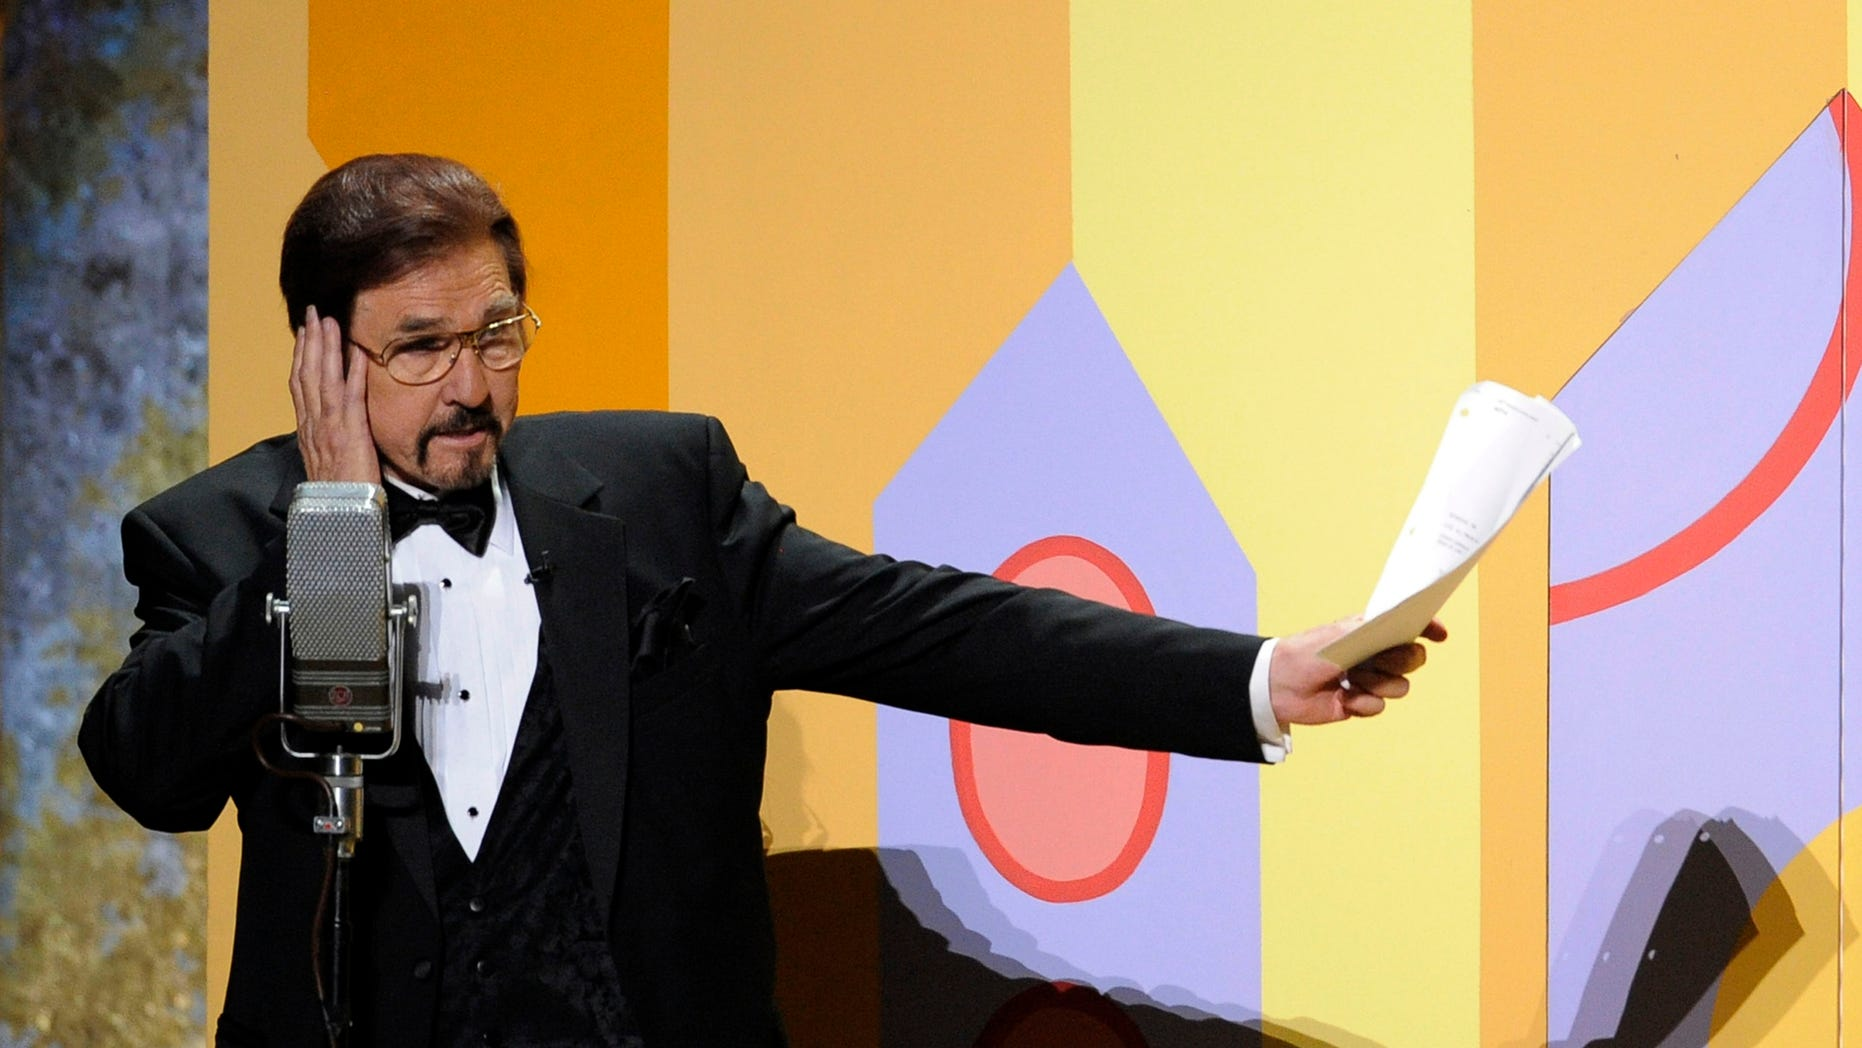 Sept. 21, 2008. Gary Owens performs in a skit at the 60th Primetime Emmy Awards in Los Angeles.